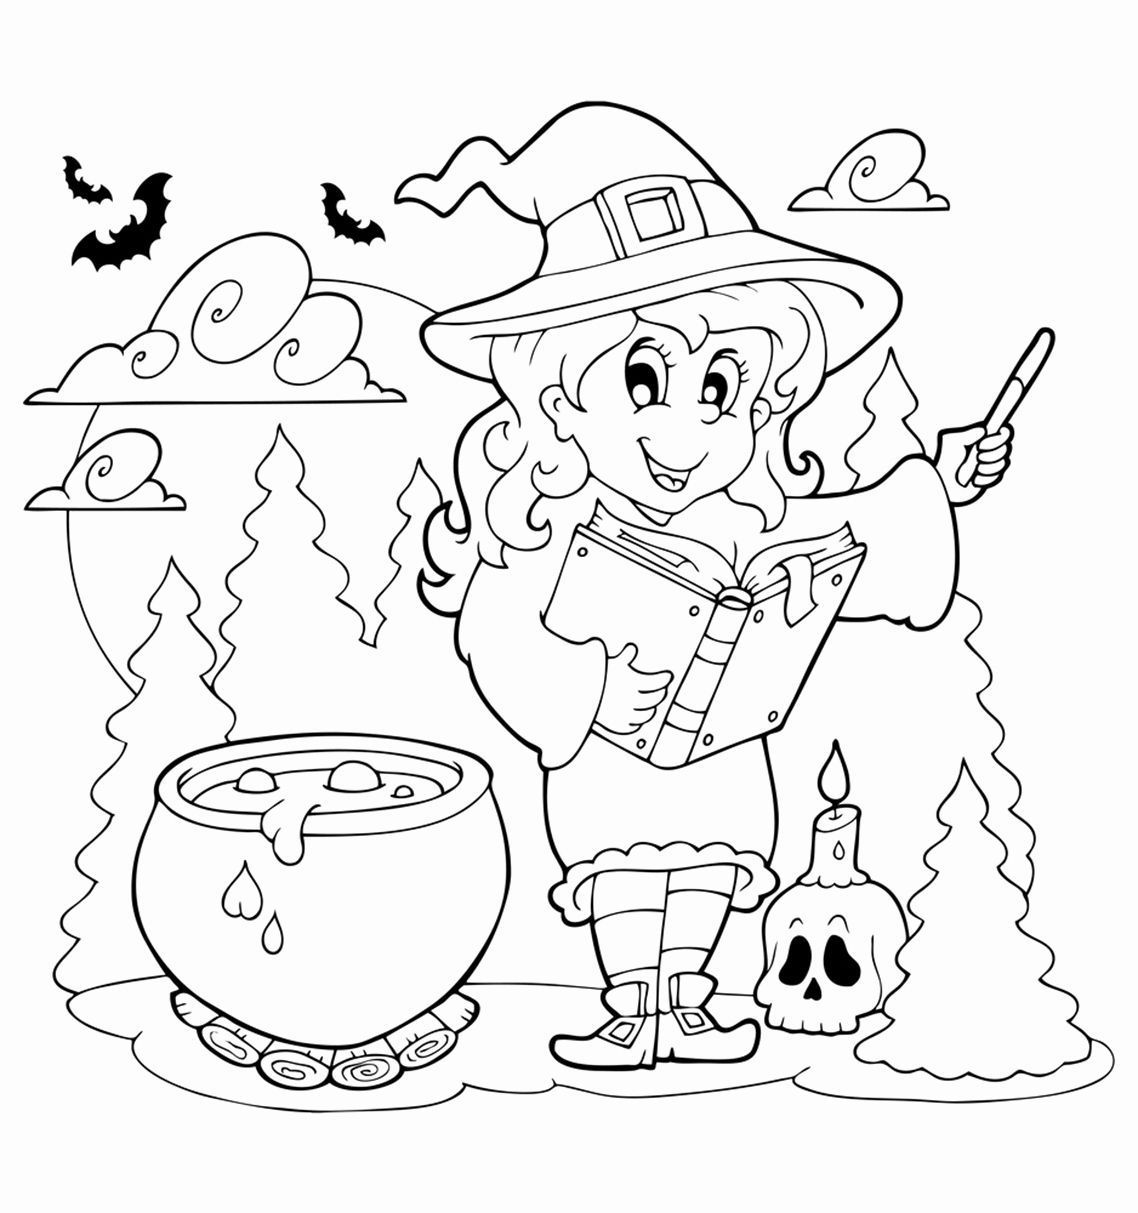 Coloring Activities for toddlers Pdf Awesome Free Coloring ...